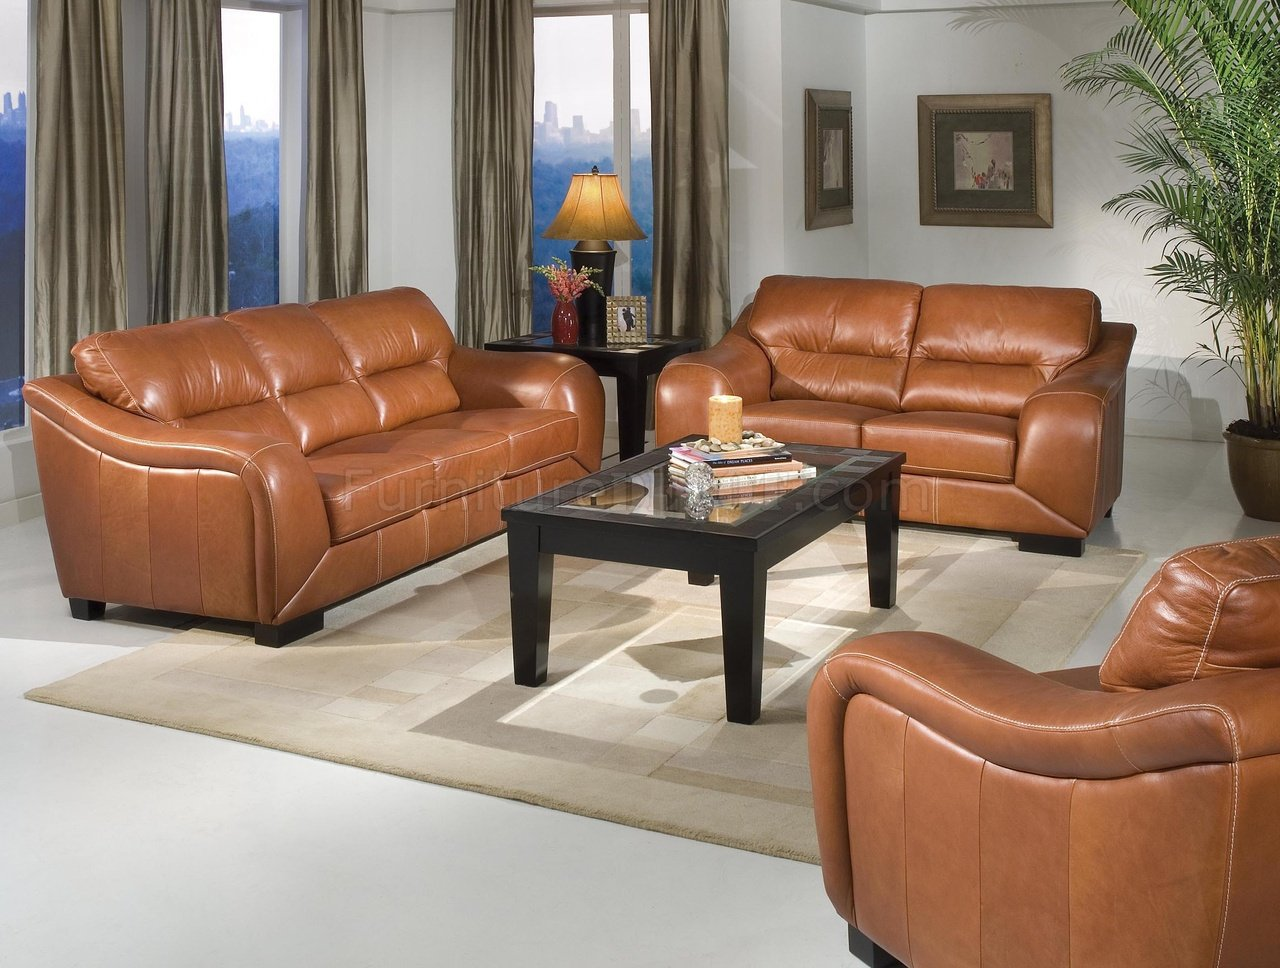 chestnut colored leather sofa bed for studio apartment contemporary living room w waterfall arms